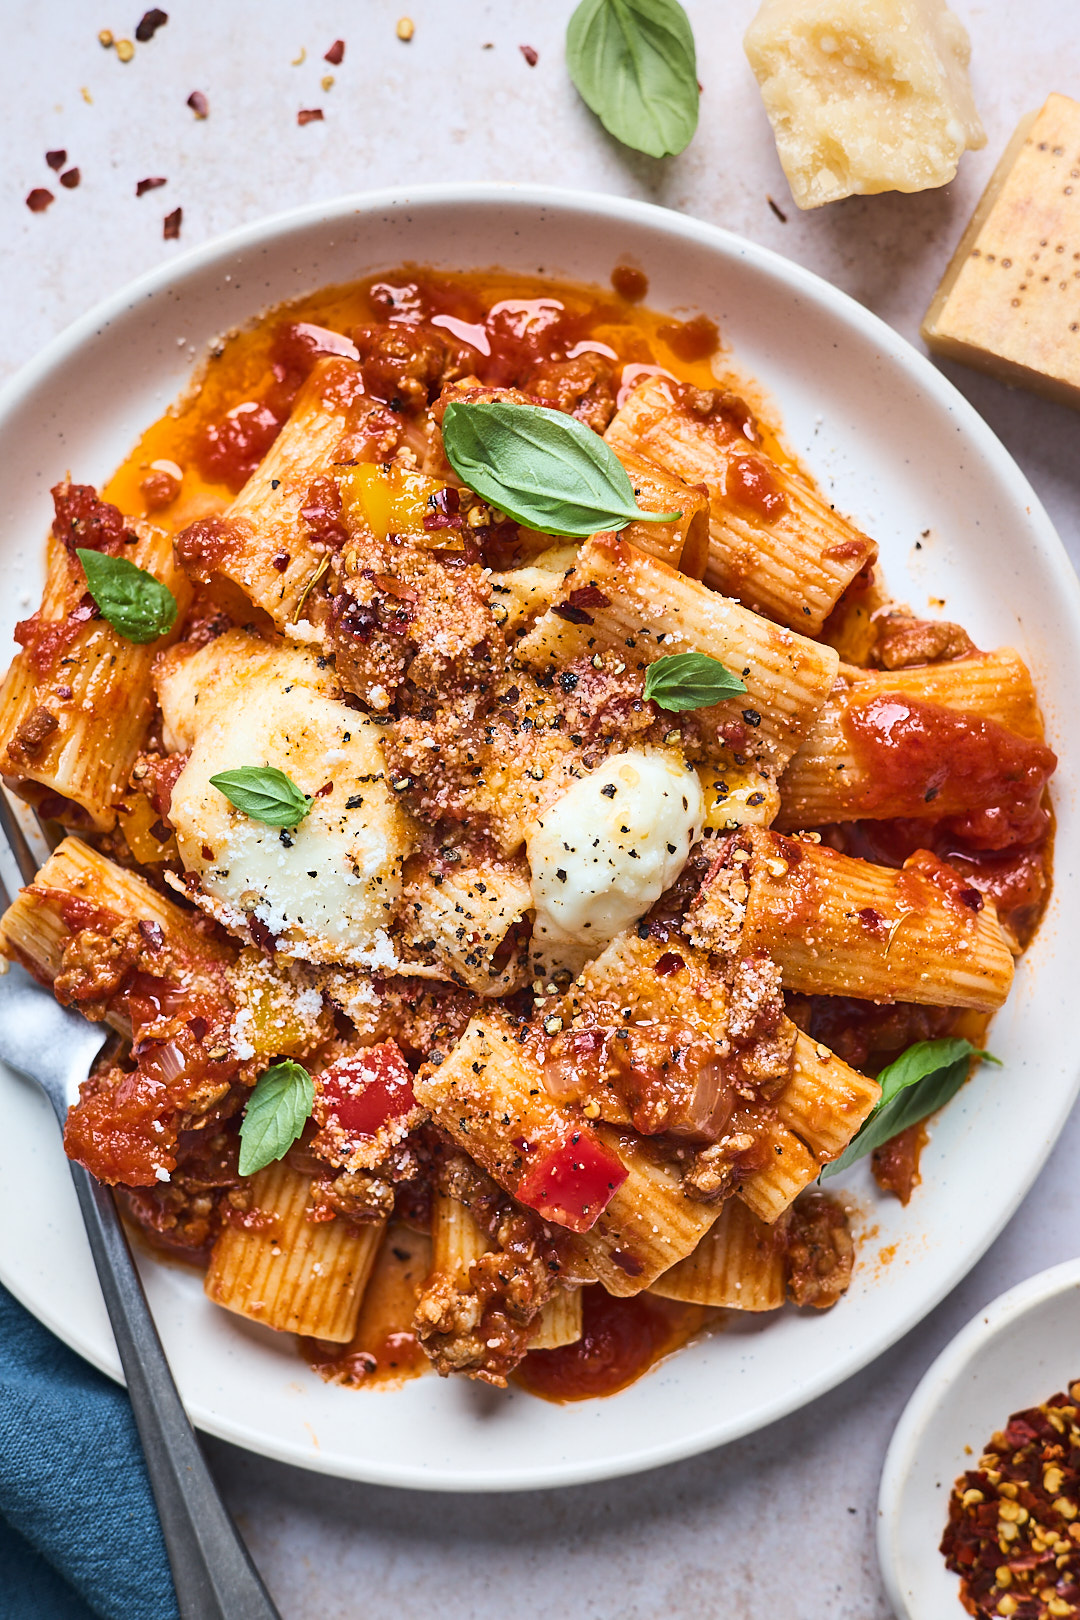 Easy Spicy Italian Sausage and Peppers Pasta Bake